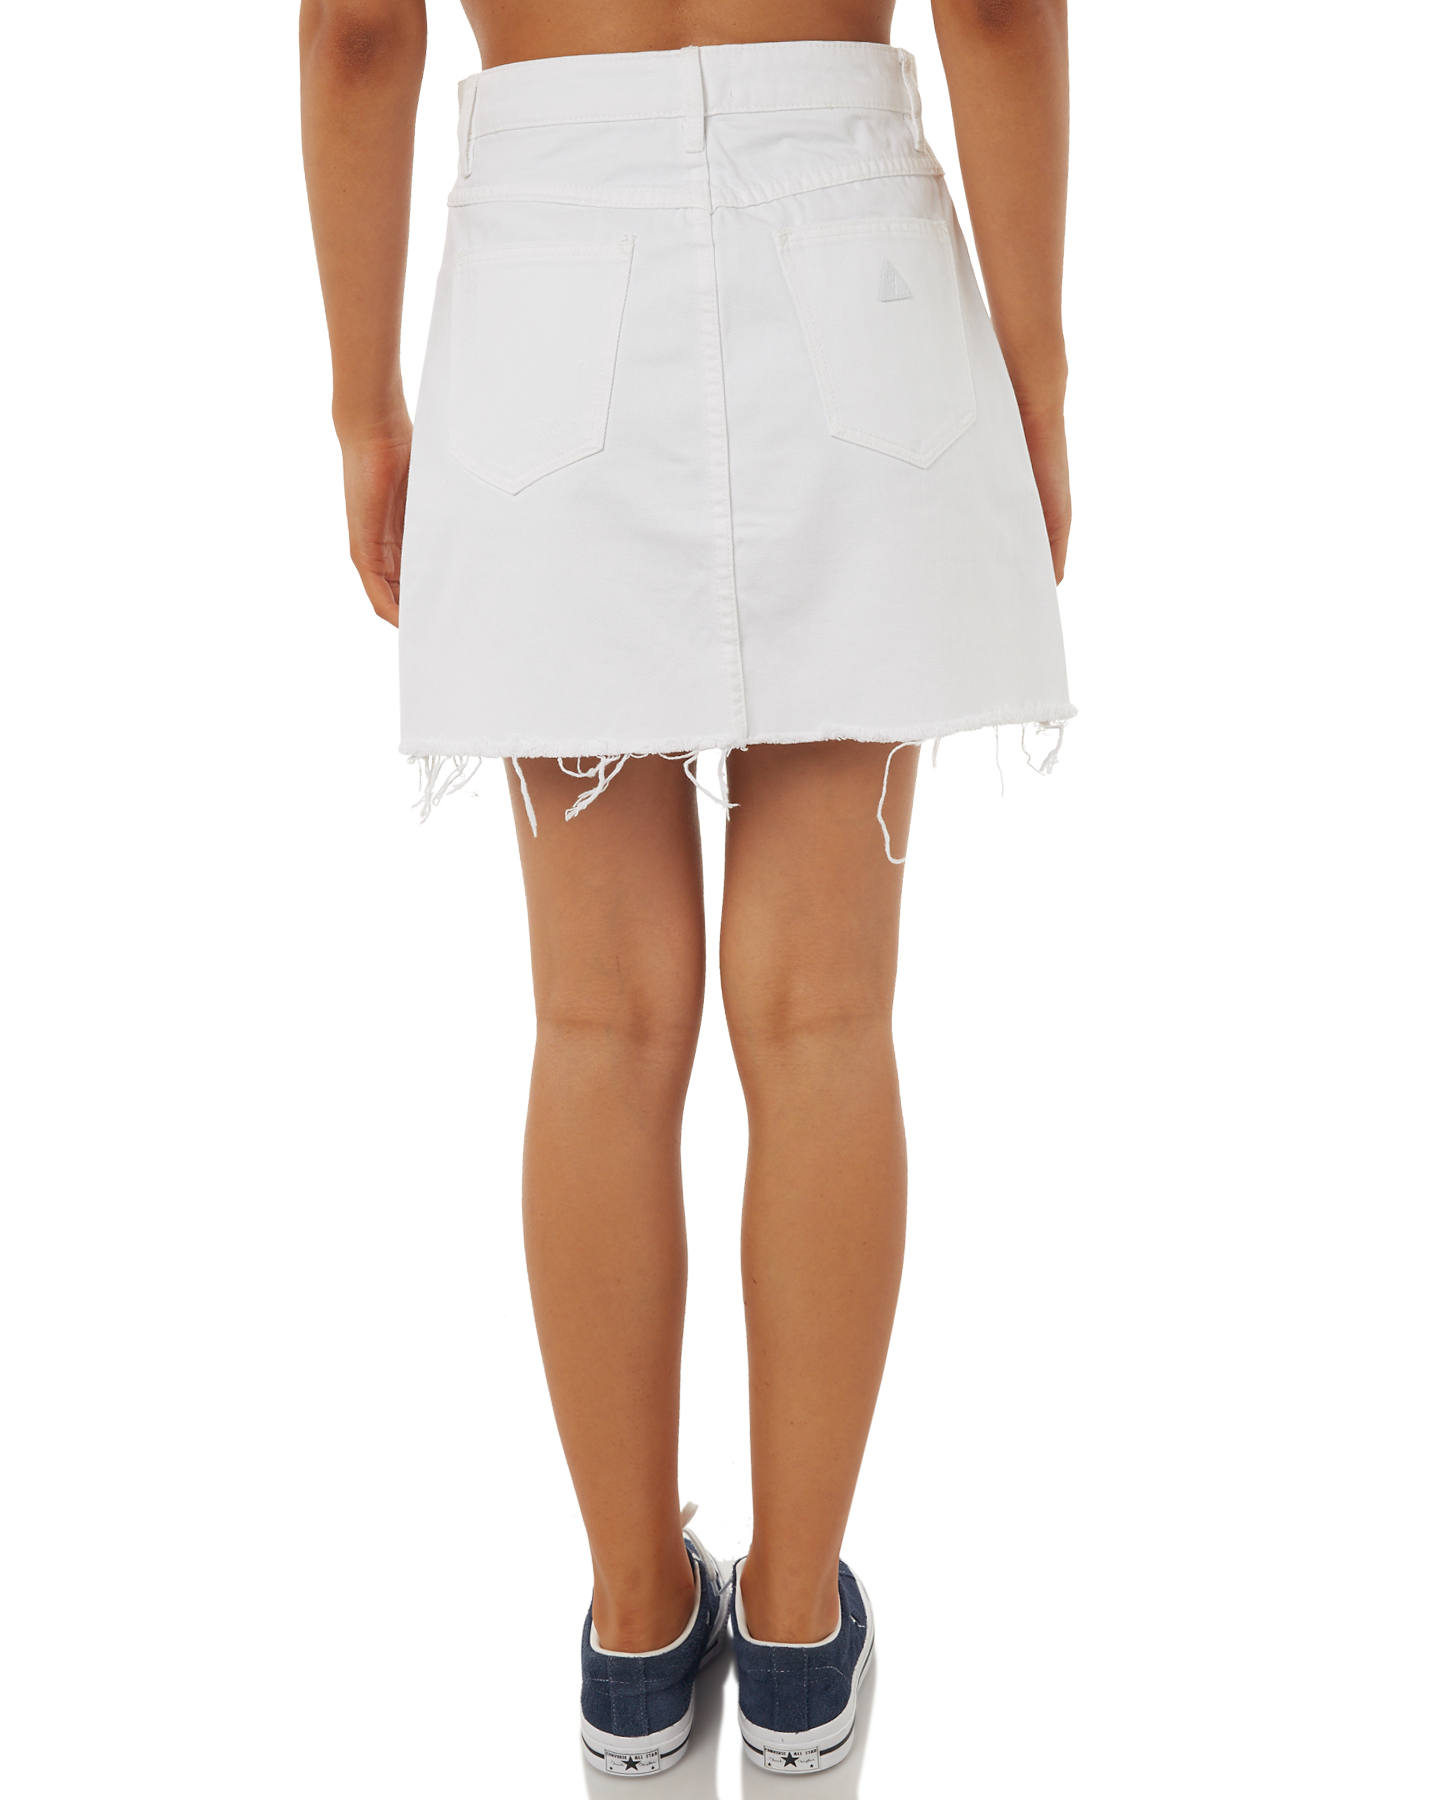 cefd4a53c3d3 ... WHITEHAVEN WOMENS CLOTHING A.BRAND SKIRTS - 710733247 ...